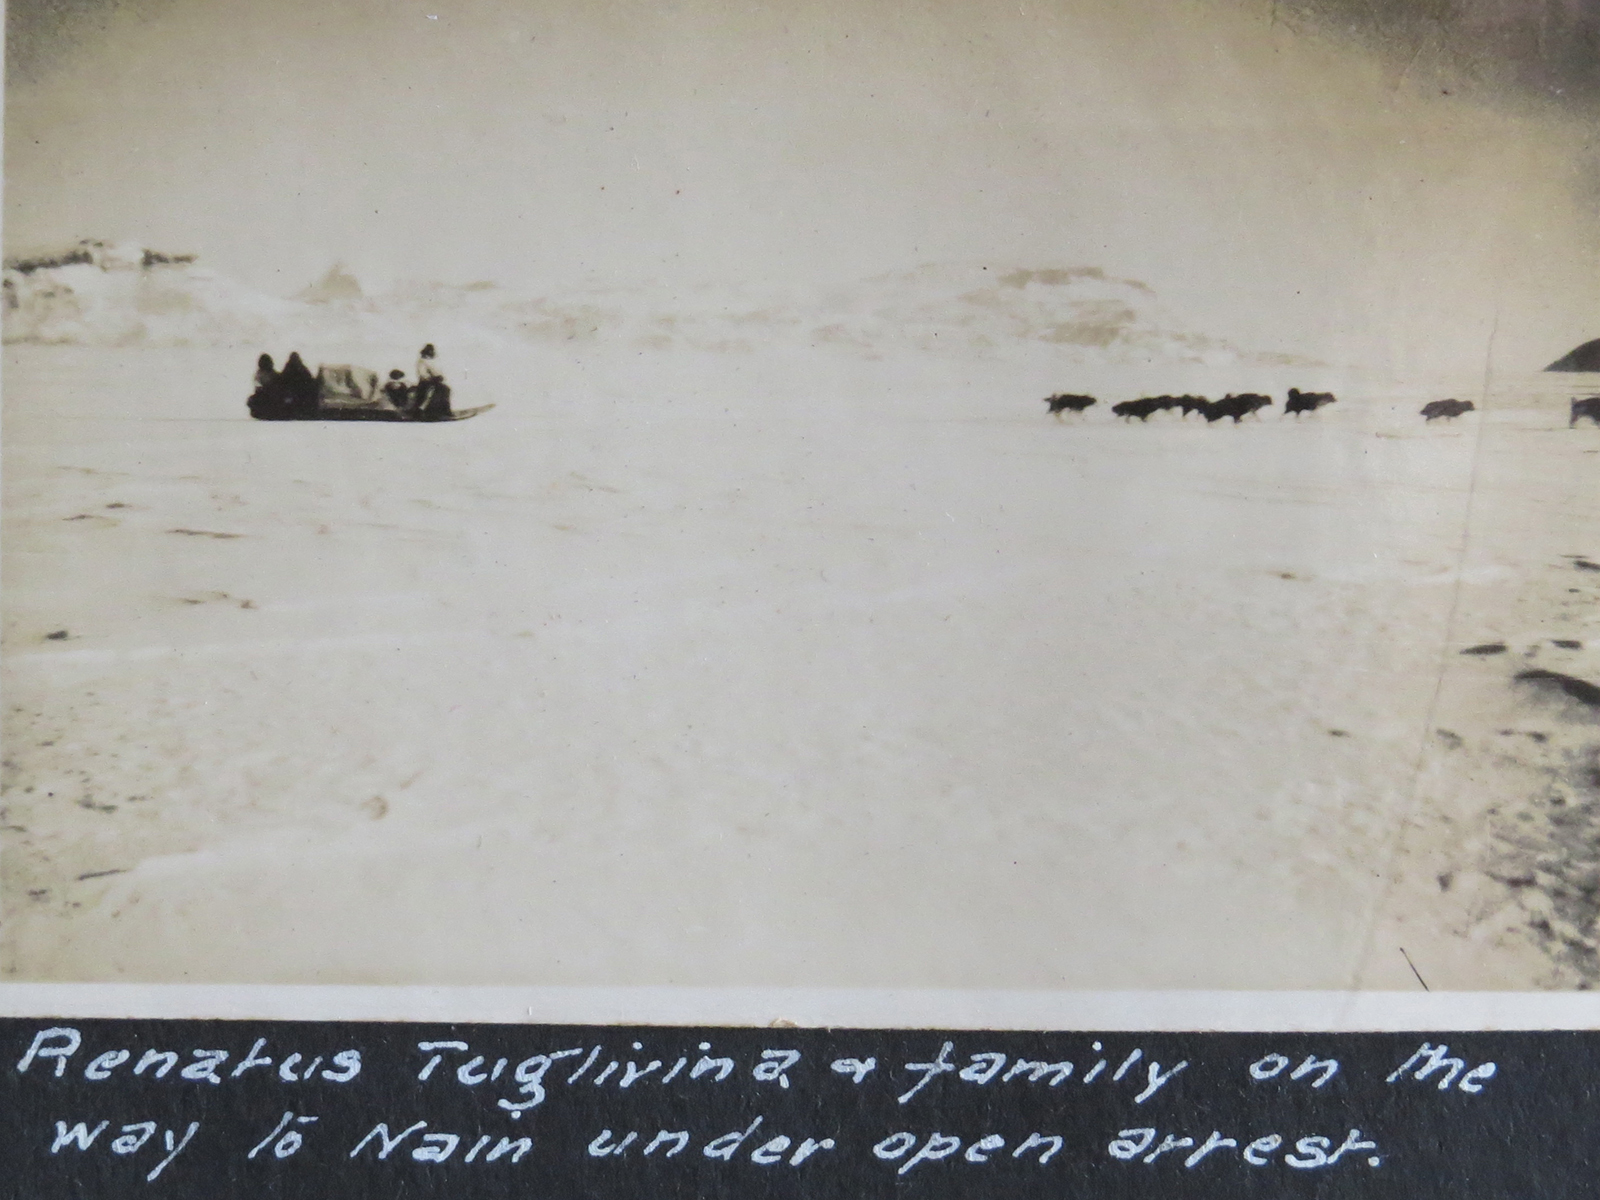 Renatus Tuglavina and his family making their way to Nain under house arrest